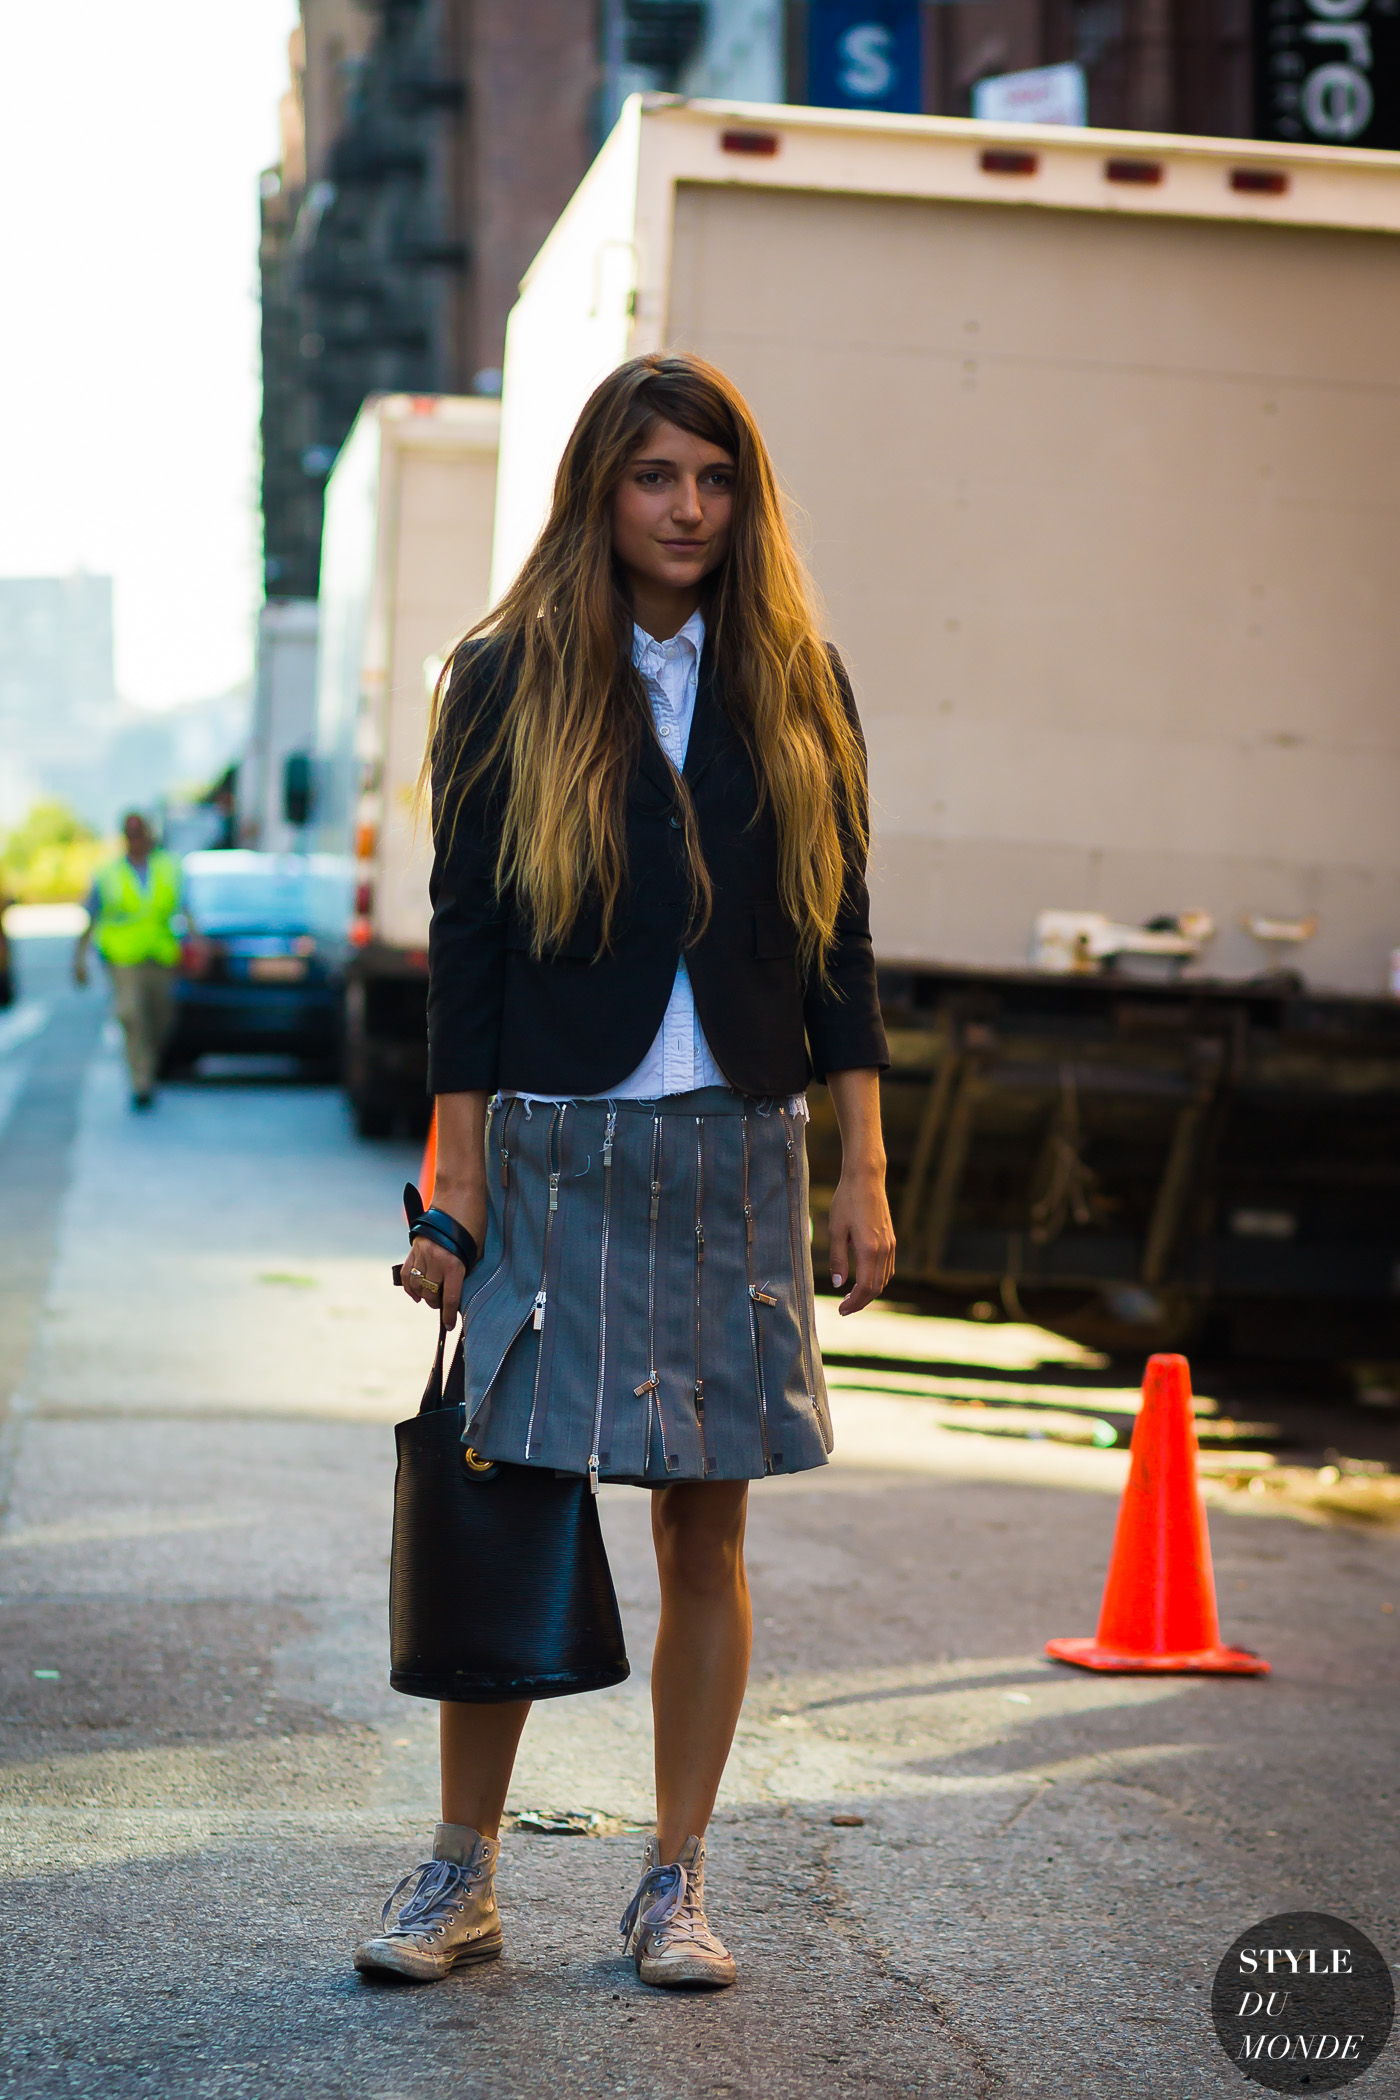 Before Thom Browne by STYLEDUMONDE Street Style Fashion Photography